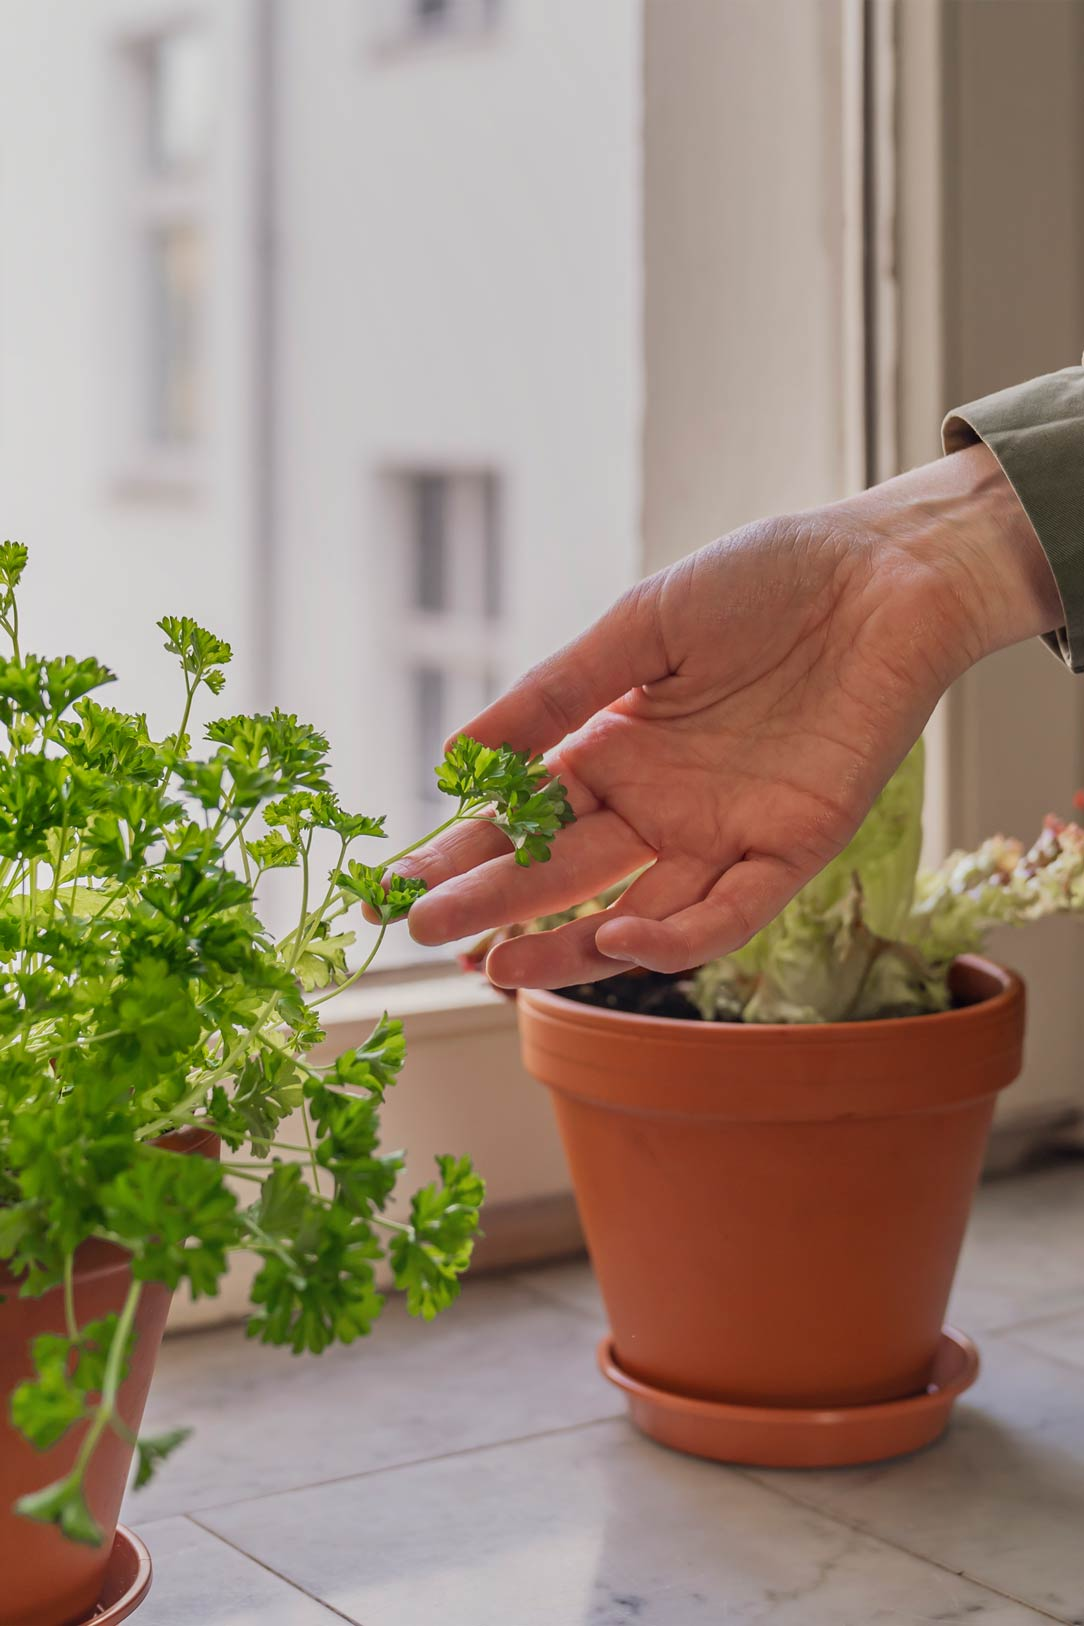 Growing food at home with Grüneo